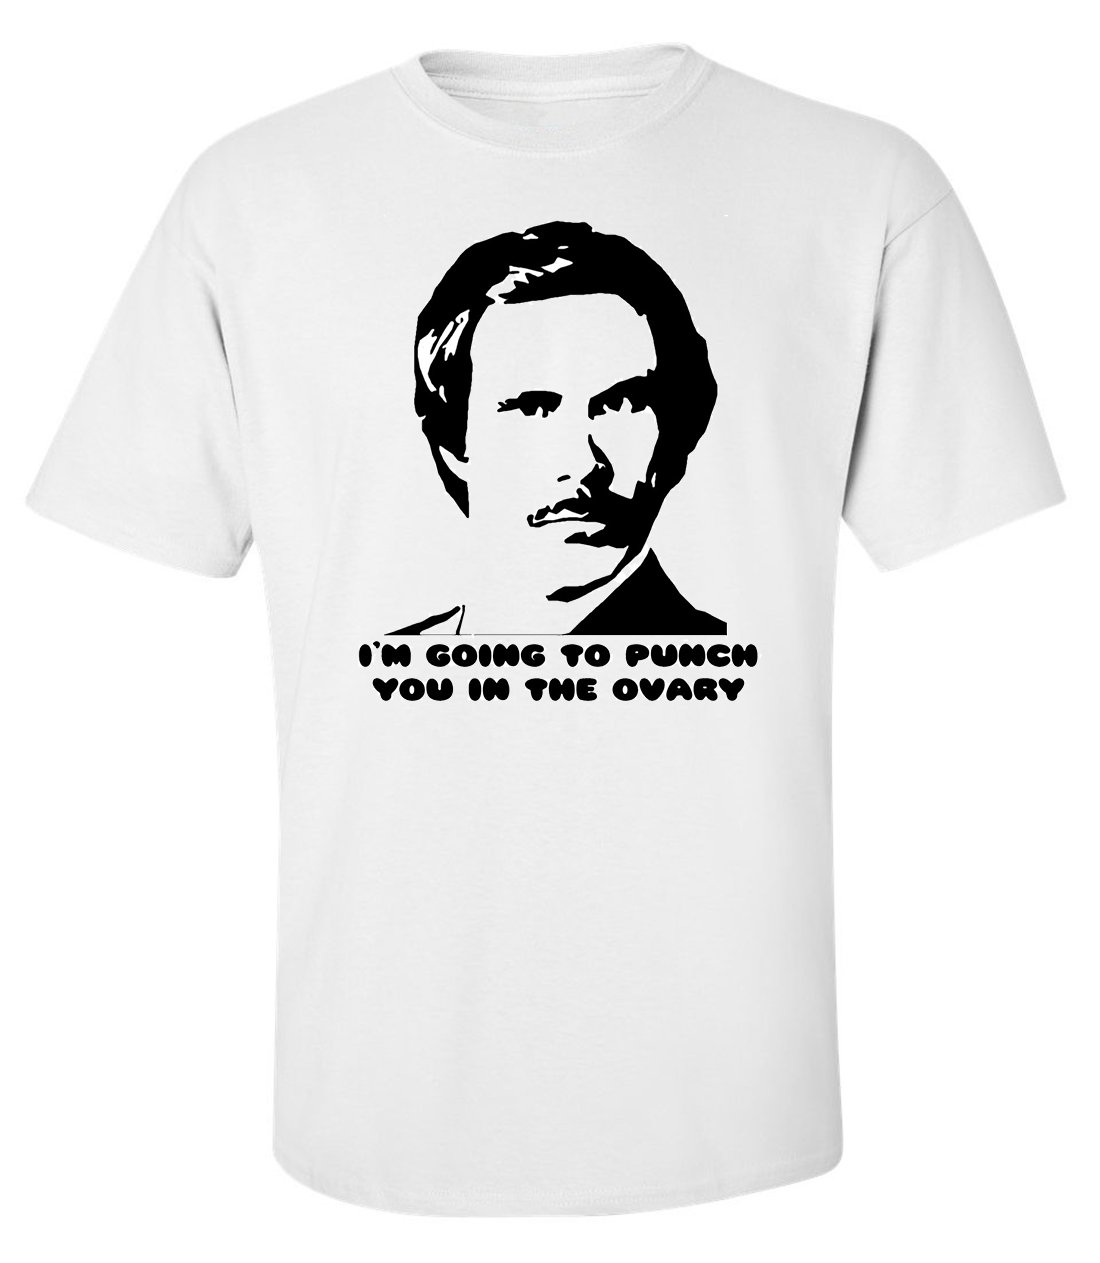 Anchorman stencil funny portrait slogan men printed white t-shirt size S